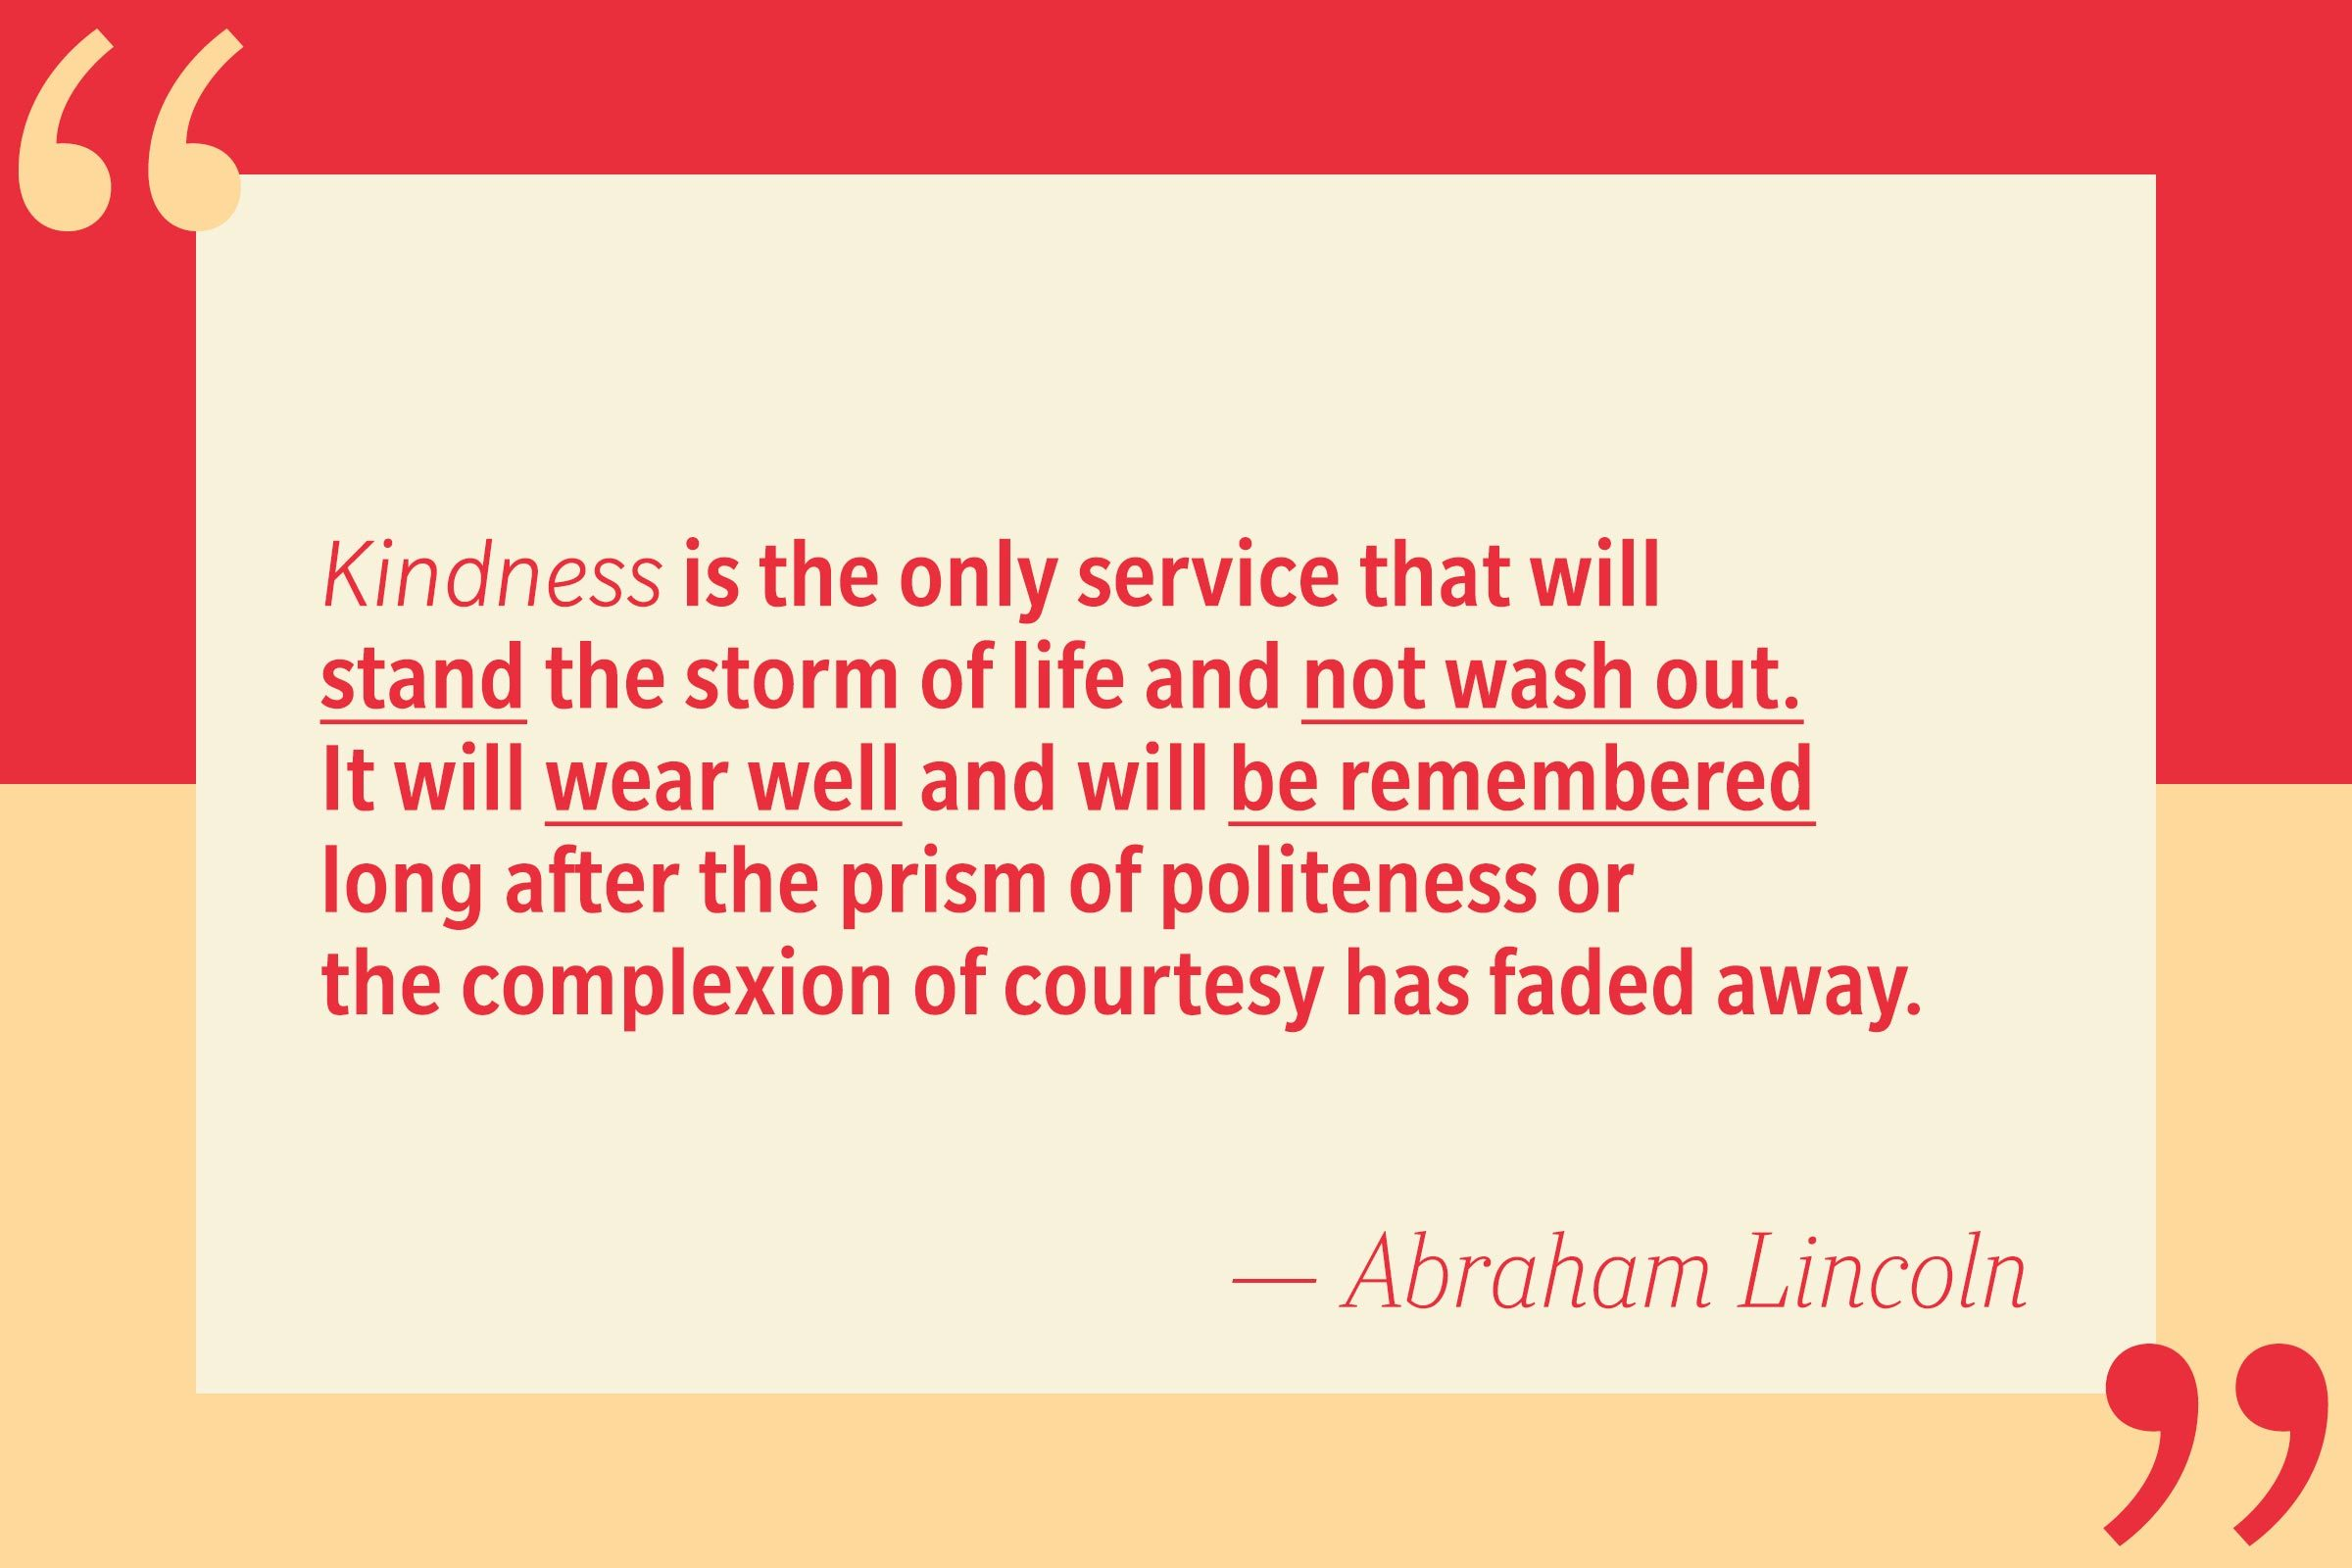 Kindness is the only service that will stand the storm of life and not wash out. It will wear well and will be remembered long after the prism of politeness or the complexion of courtesy has faded away. — Abraham Lincoln